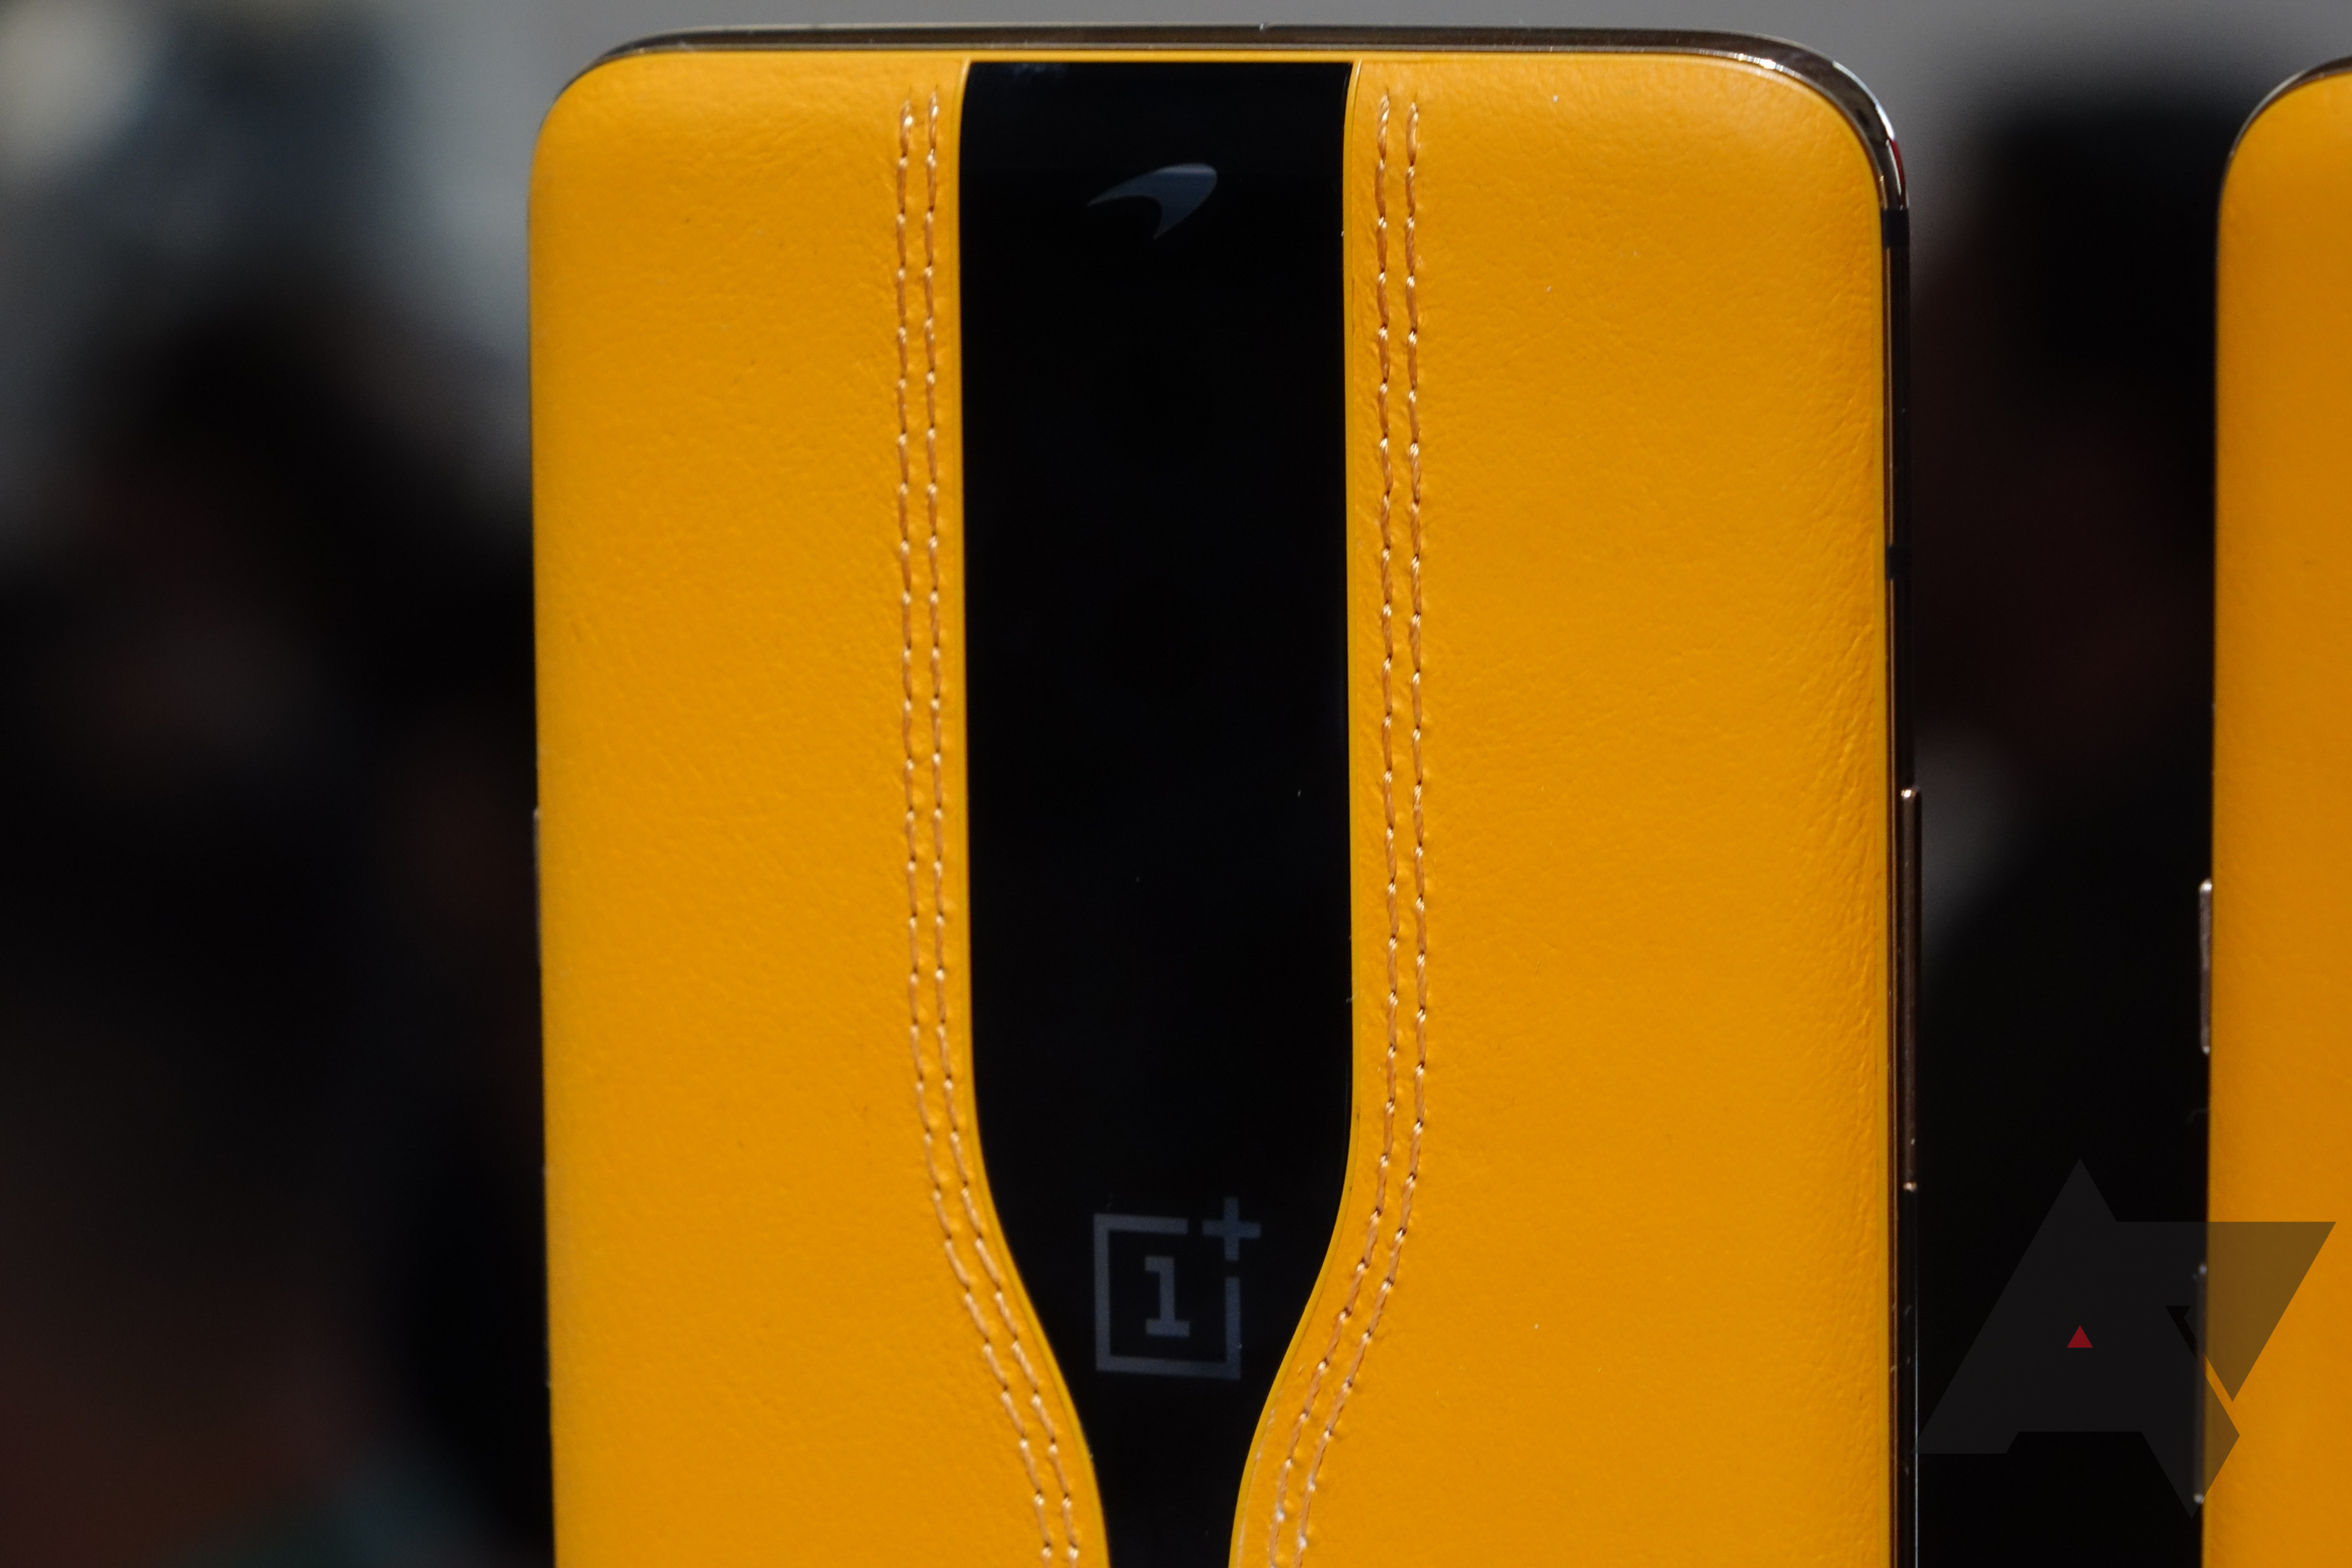 OnePlus Concept One officially revealed at CES 2020 with invisible cameras